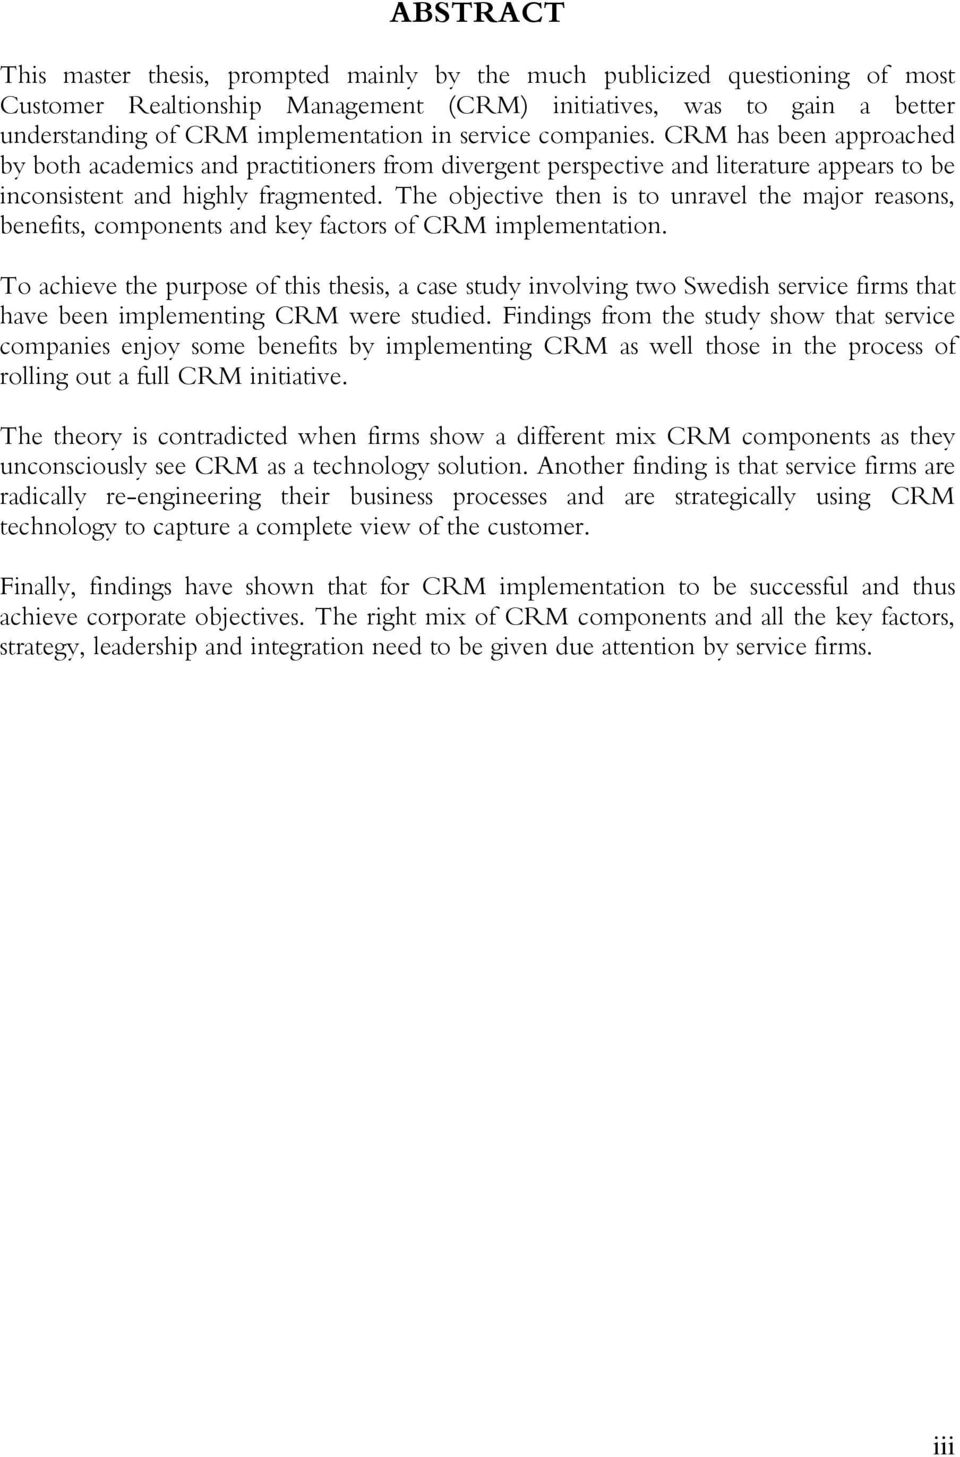 customer relationship management research paper pdf